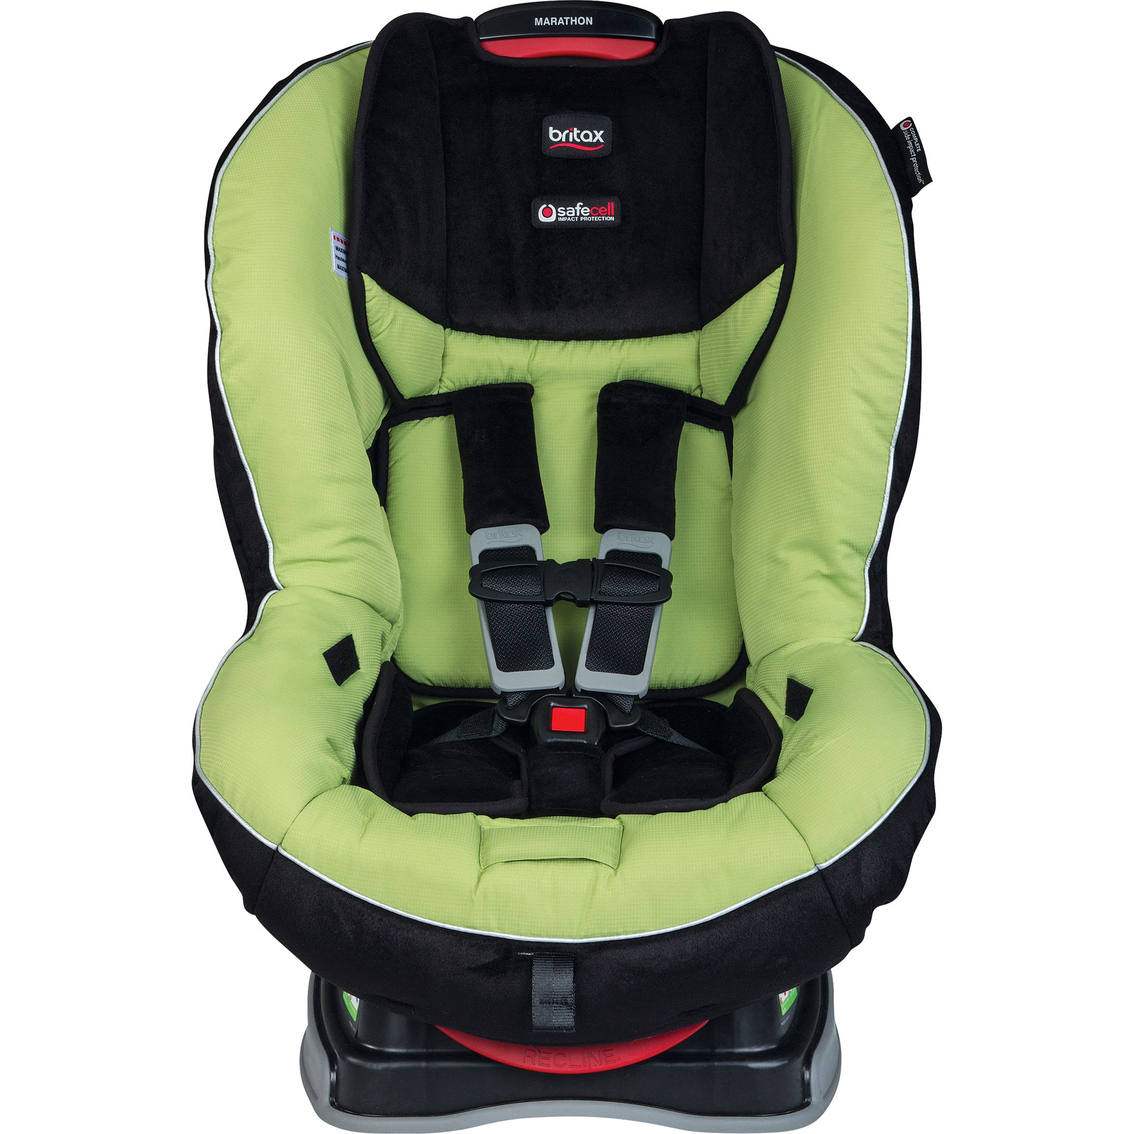 britax marathon convertible car seat baby clearance shop the exchange. Black Bedroom Furniture Sets. Home Design Ideas